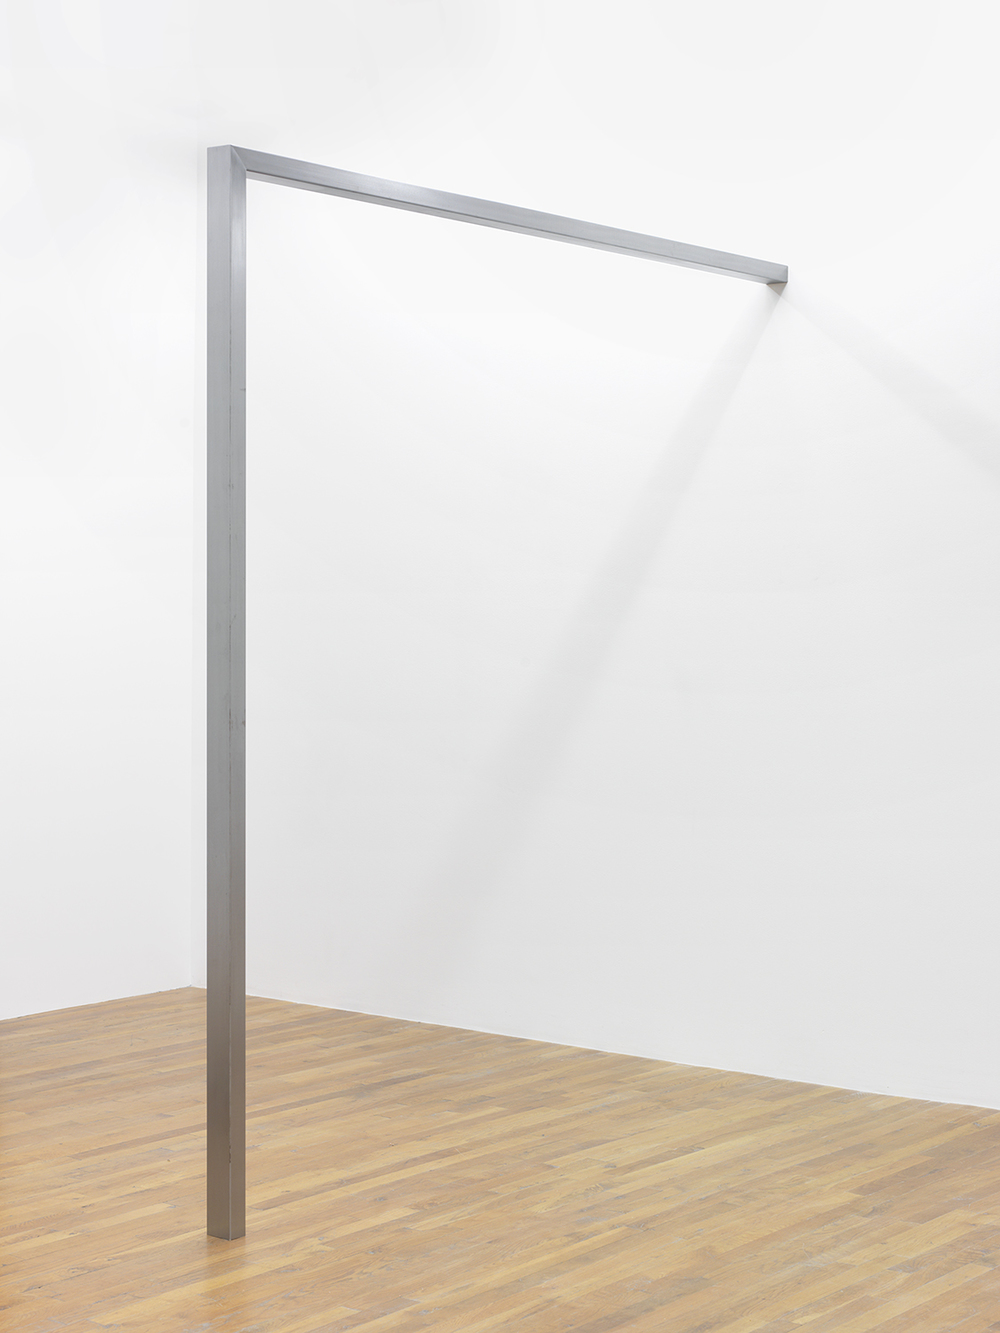 Pole , 2014  Steel  95.5 x 91.5 x 3 inches